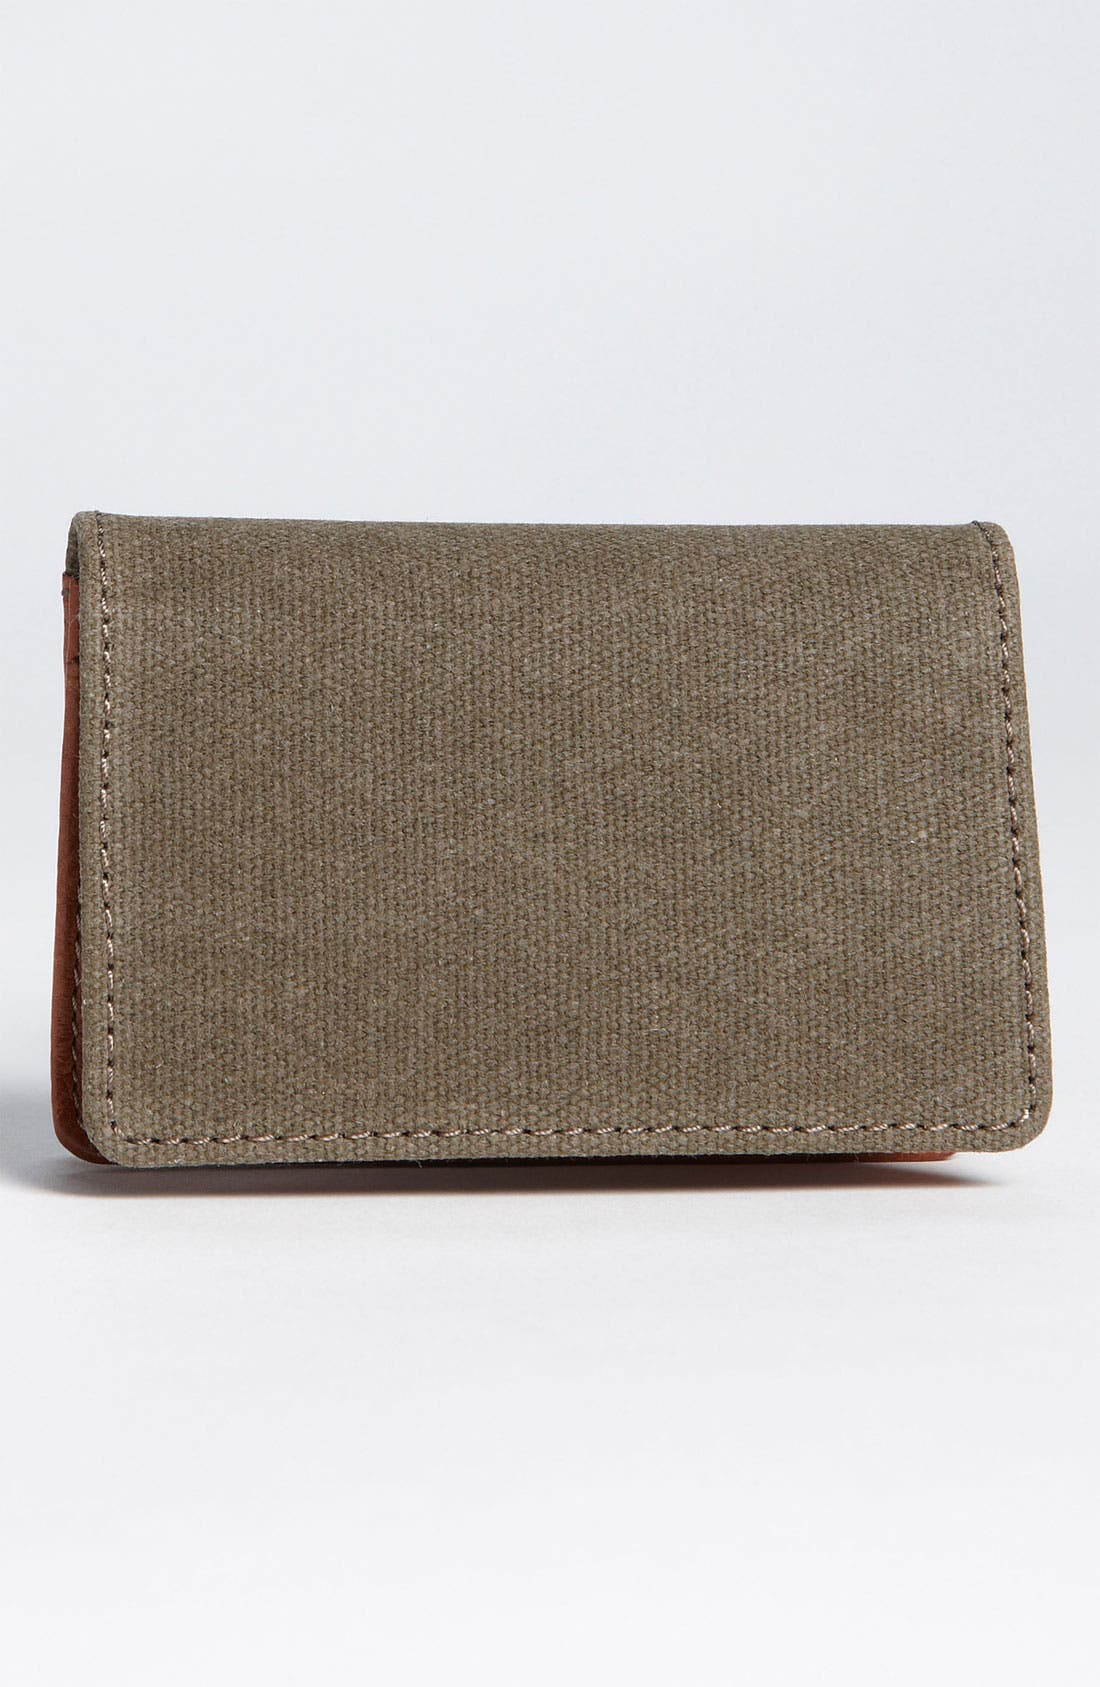 Main Image - Bosca Gusseted Card Case